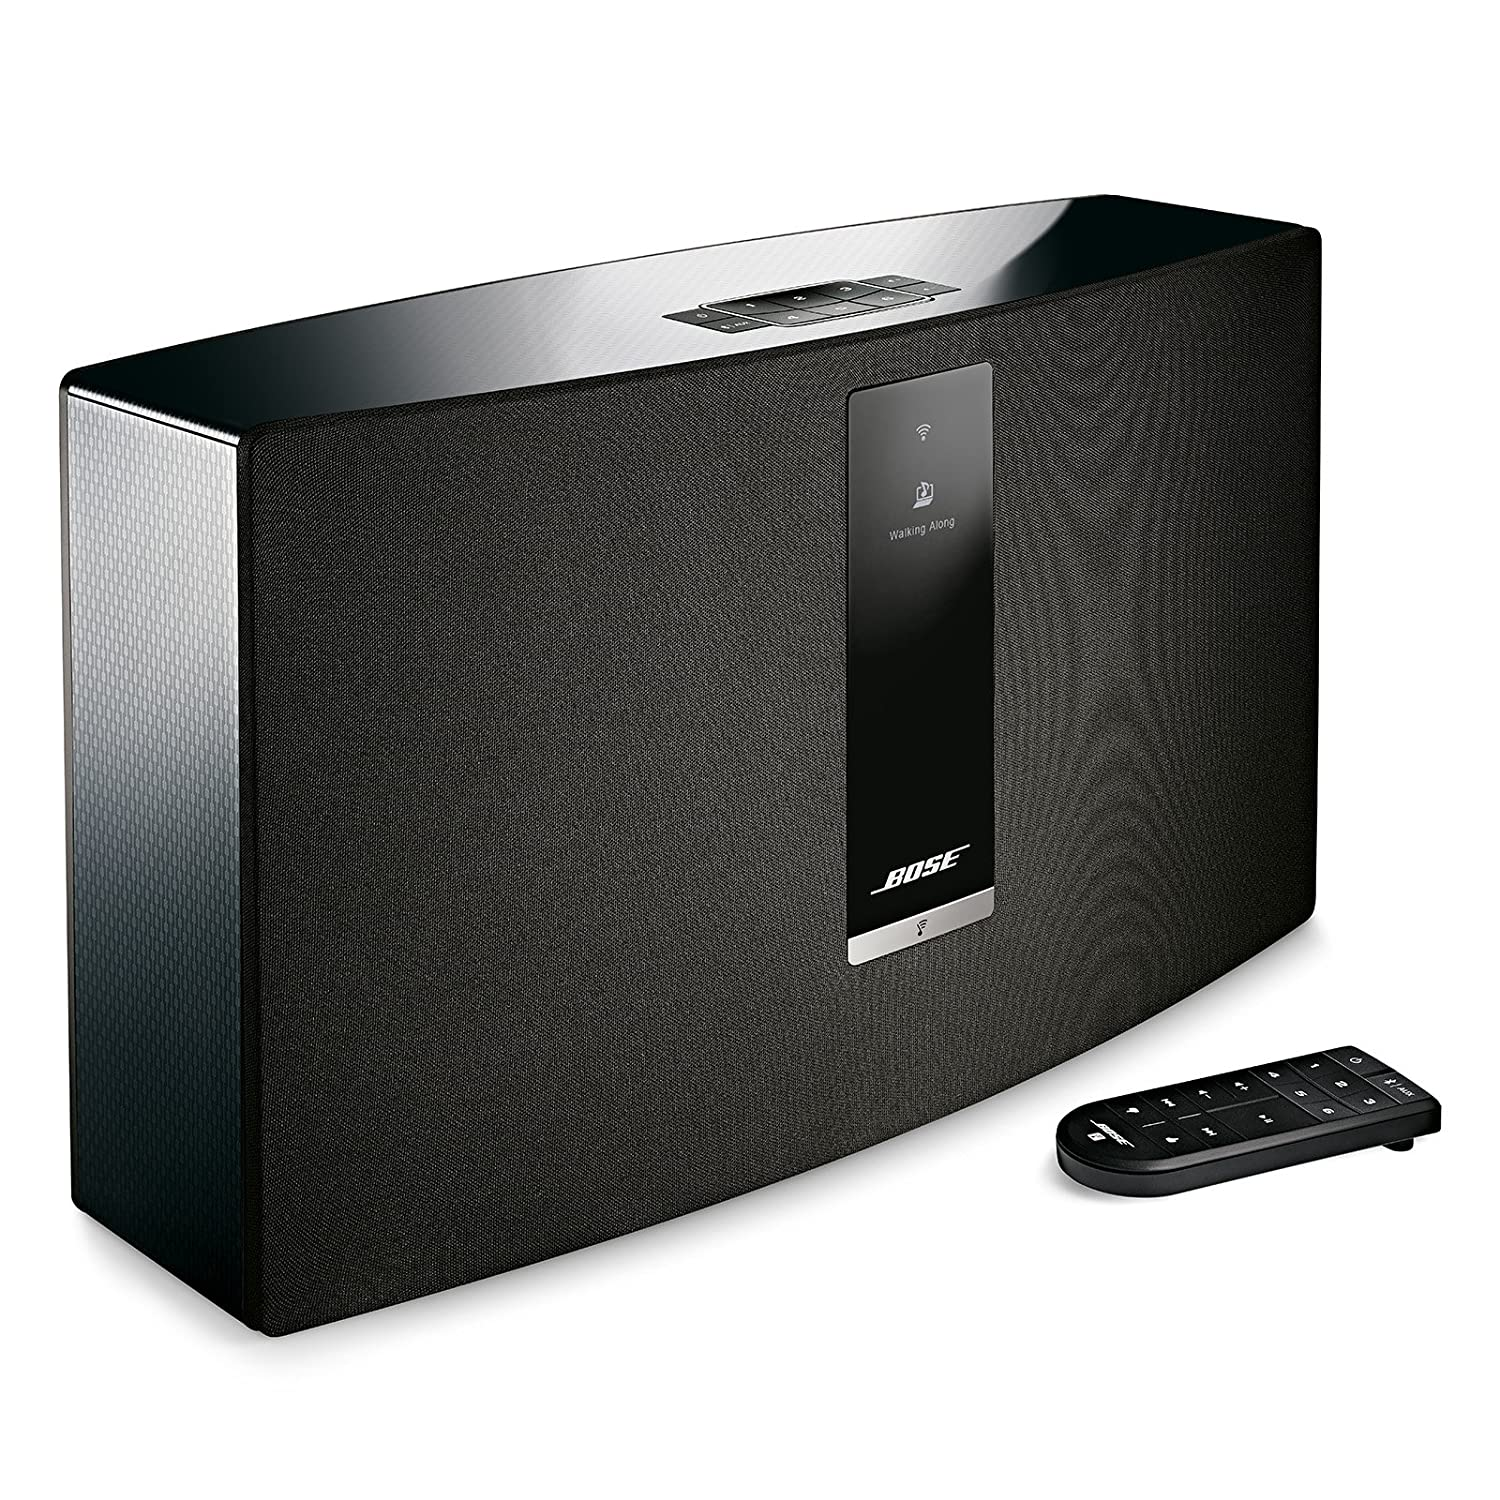 Bose Soundtouch 30 Wireless Speaker Works With Alexa Phone Lines Used For Setting Up Whole House System Black 738102 1100 Home Audio Theater